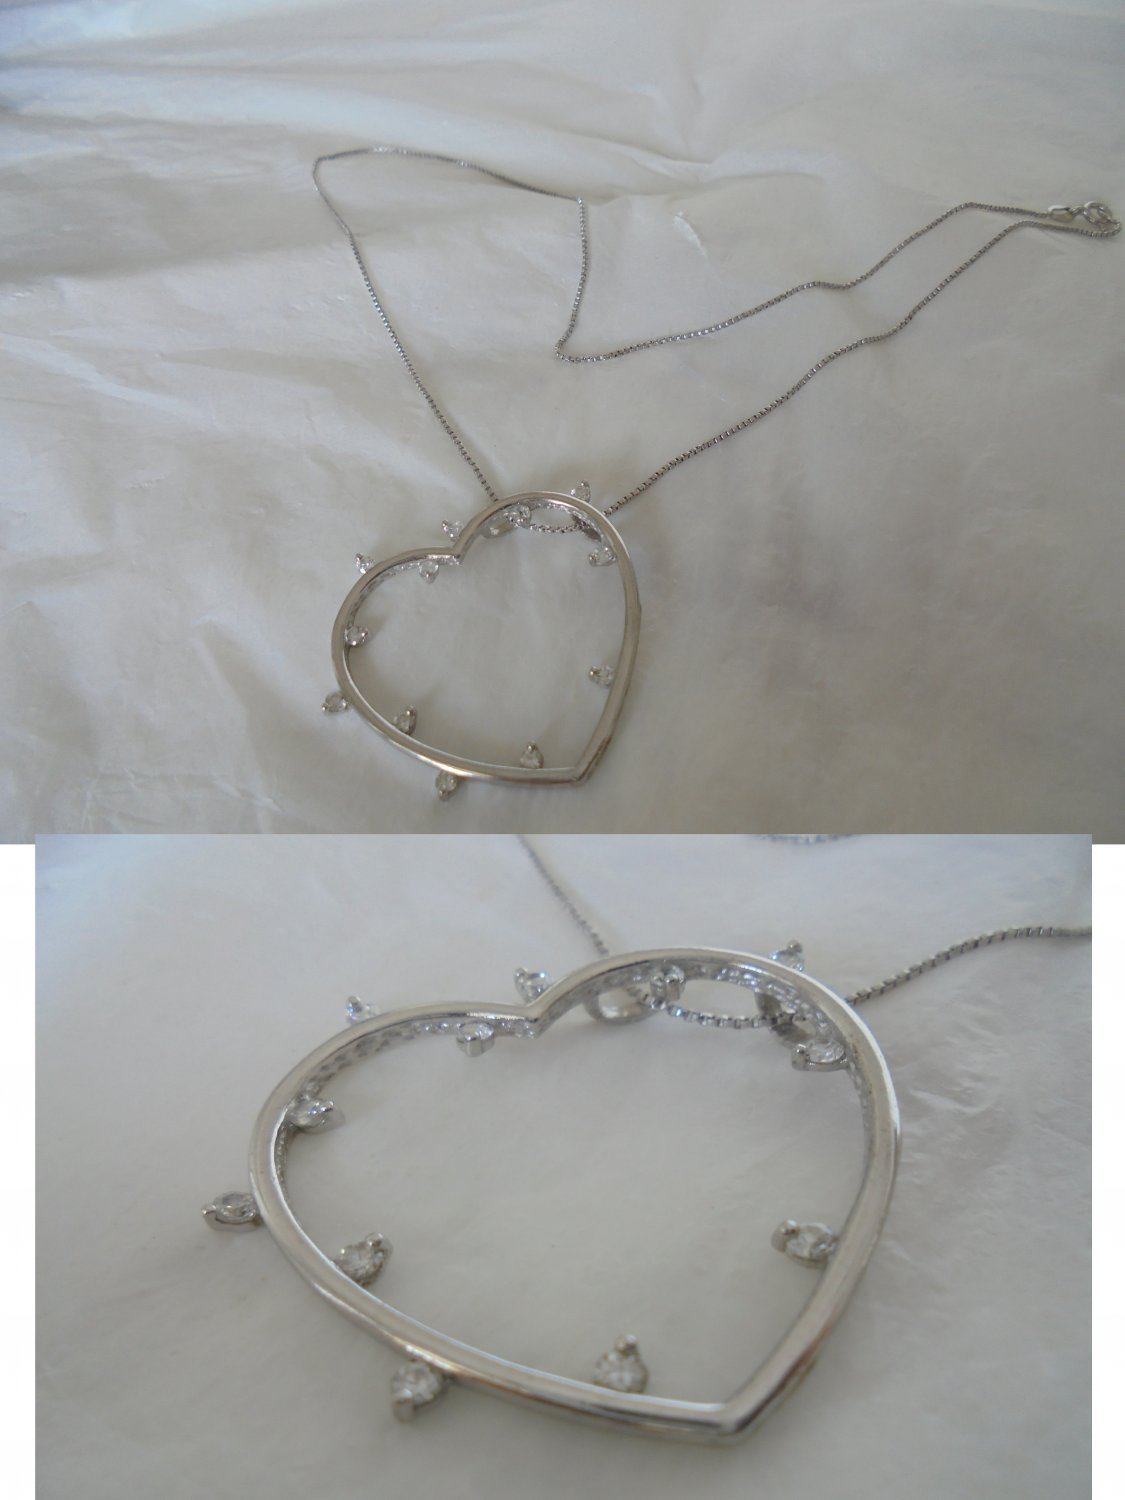 NECKLACE and HEART PENDENT charm in sterling silver 925 with Swarovski white crystals